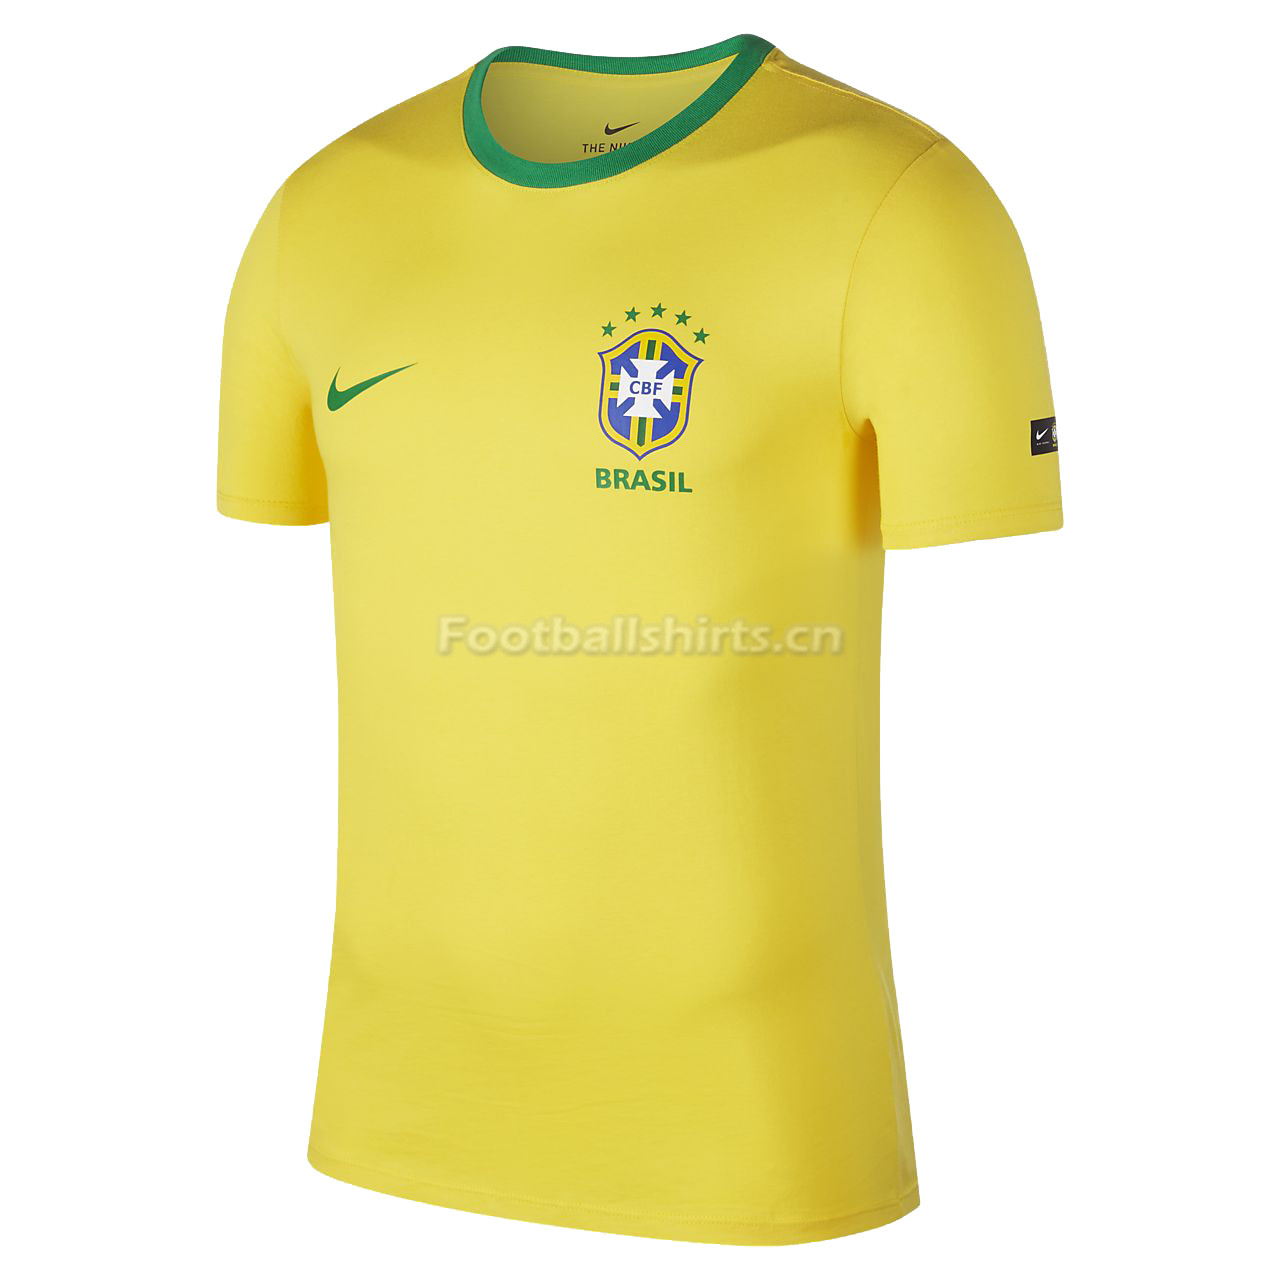 Brazil FIFA World Cup 2018 Yellow Crest T-Shirt